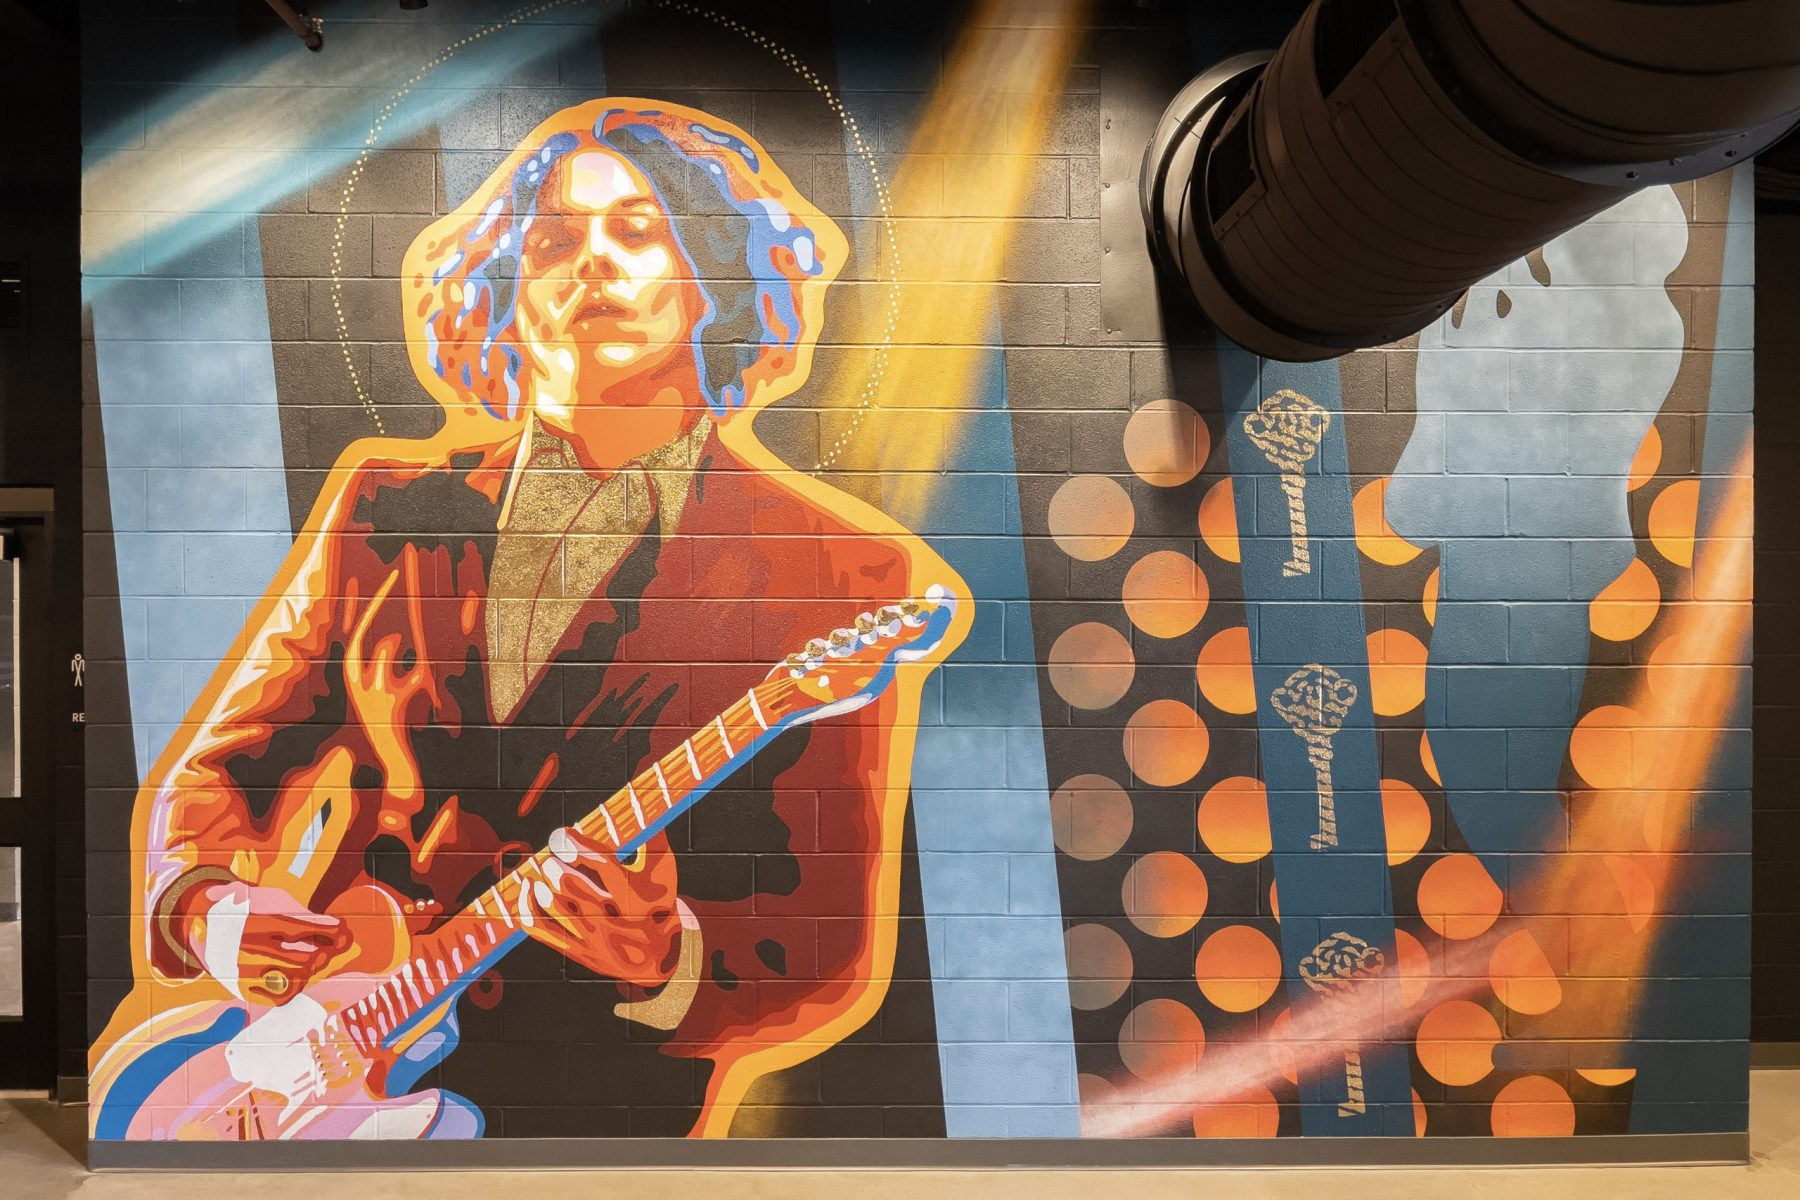 Murals of well-known musicians were painted on the walls of the venue. Photo by Phil Armstrong.